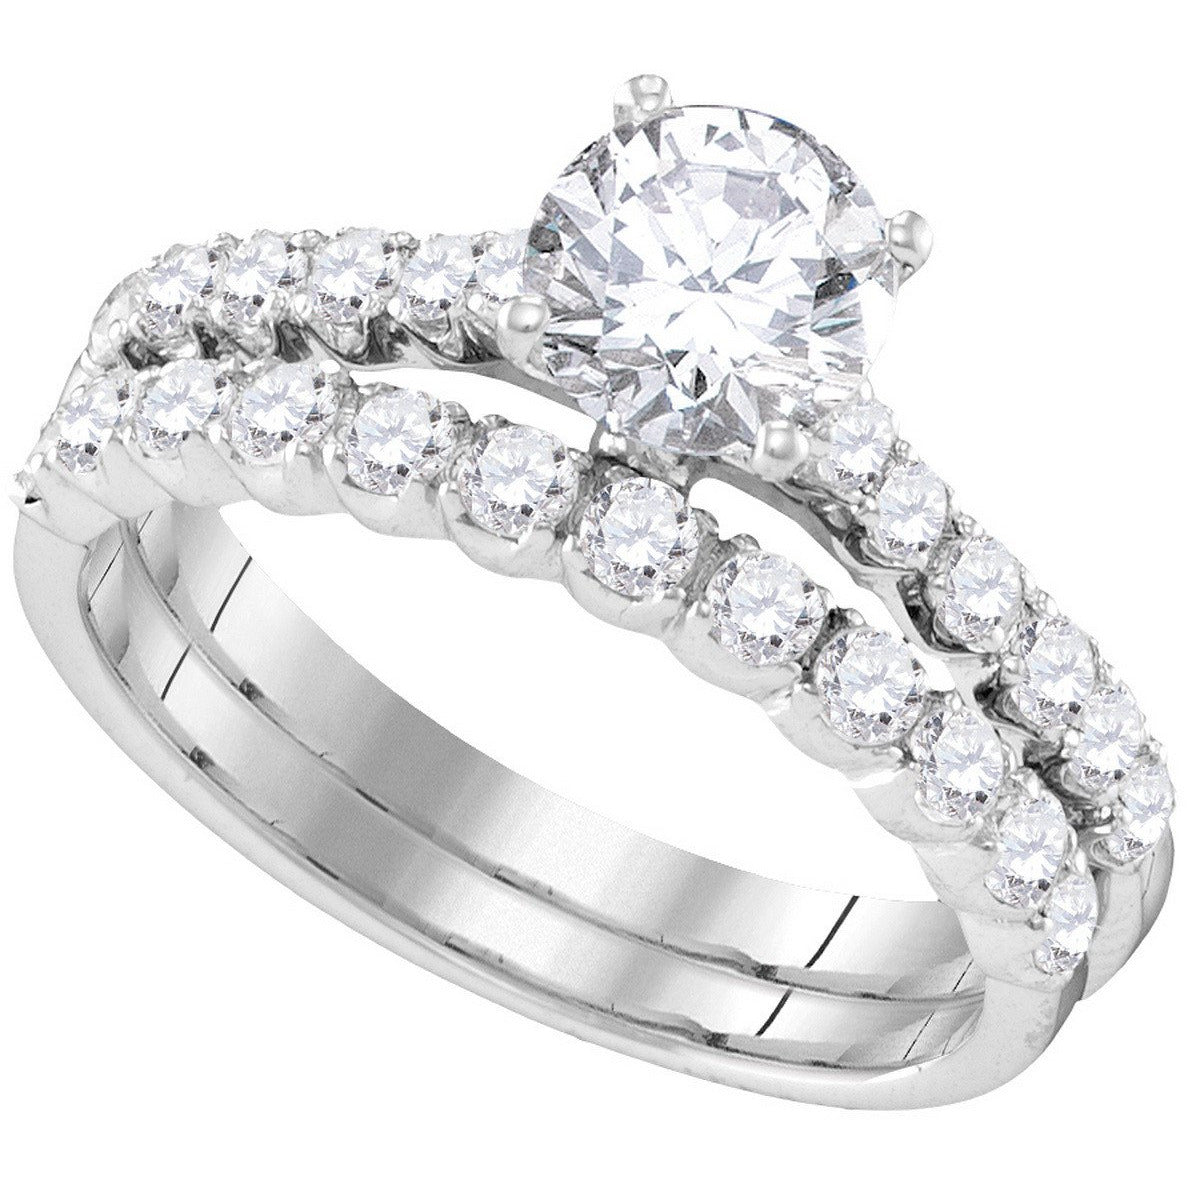 14kt White Gold Womens Round Diamond Bridal Wedding Engagement Ring Band Set 2-1/5 Cttw 109905 - shirin-diamonds